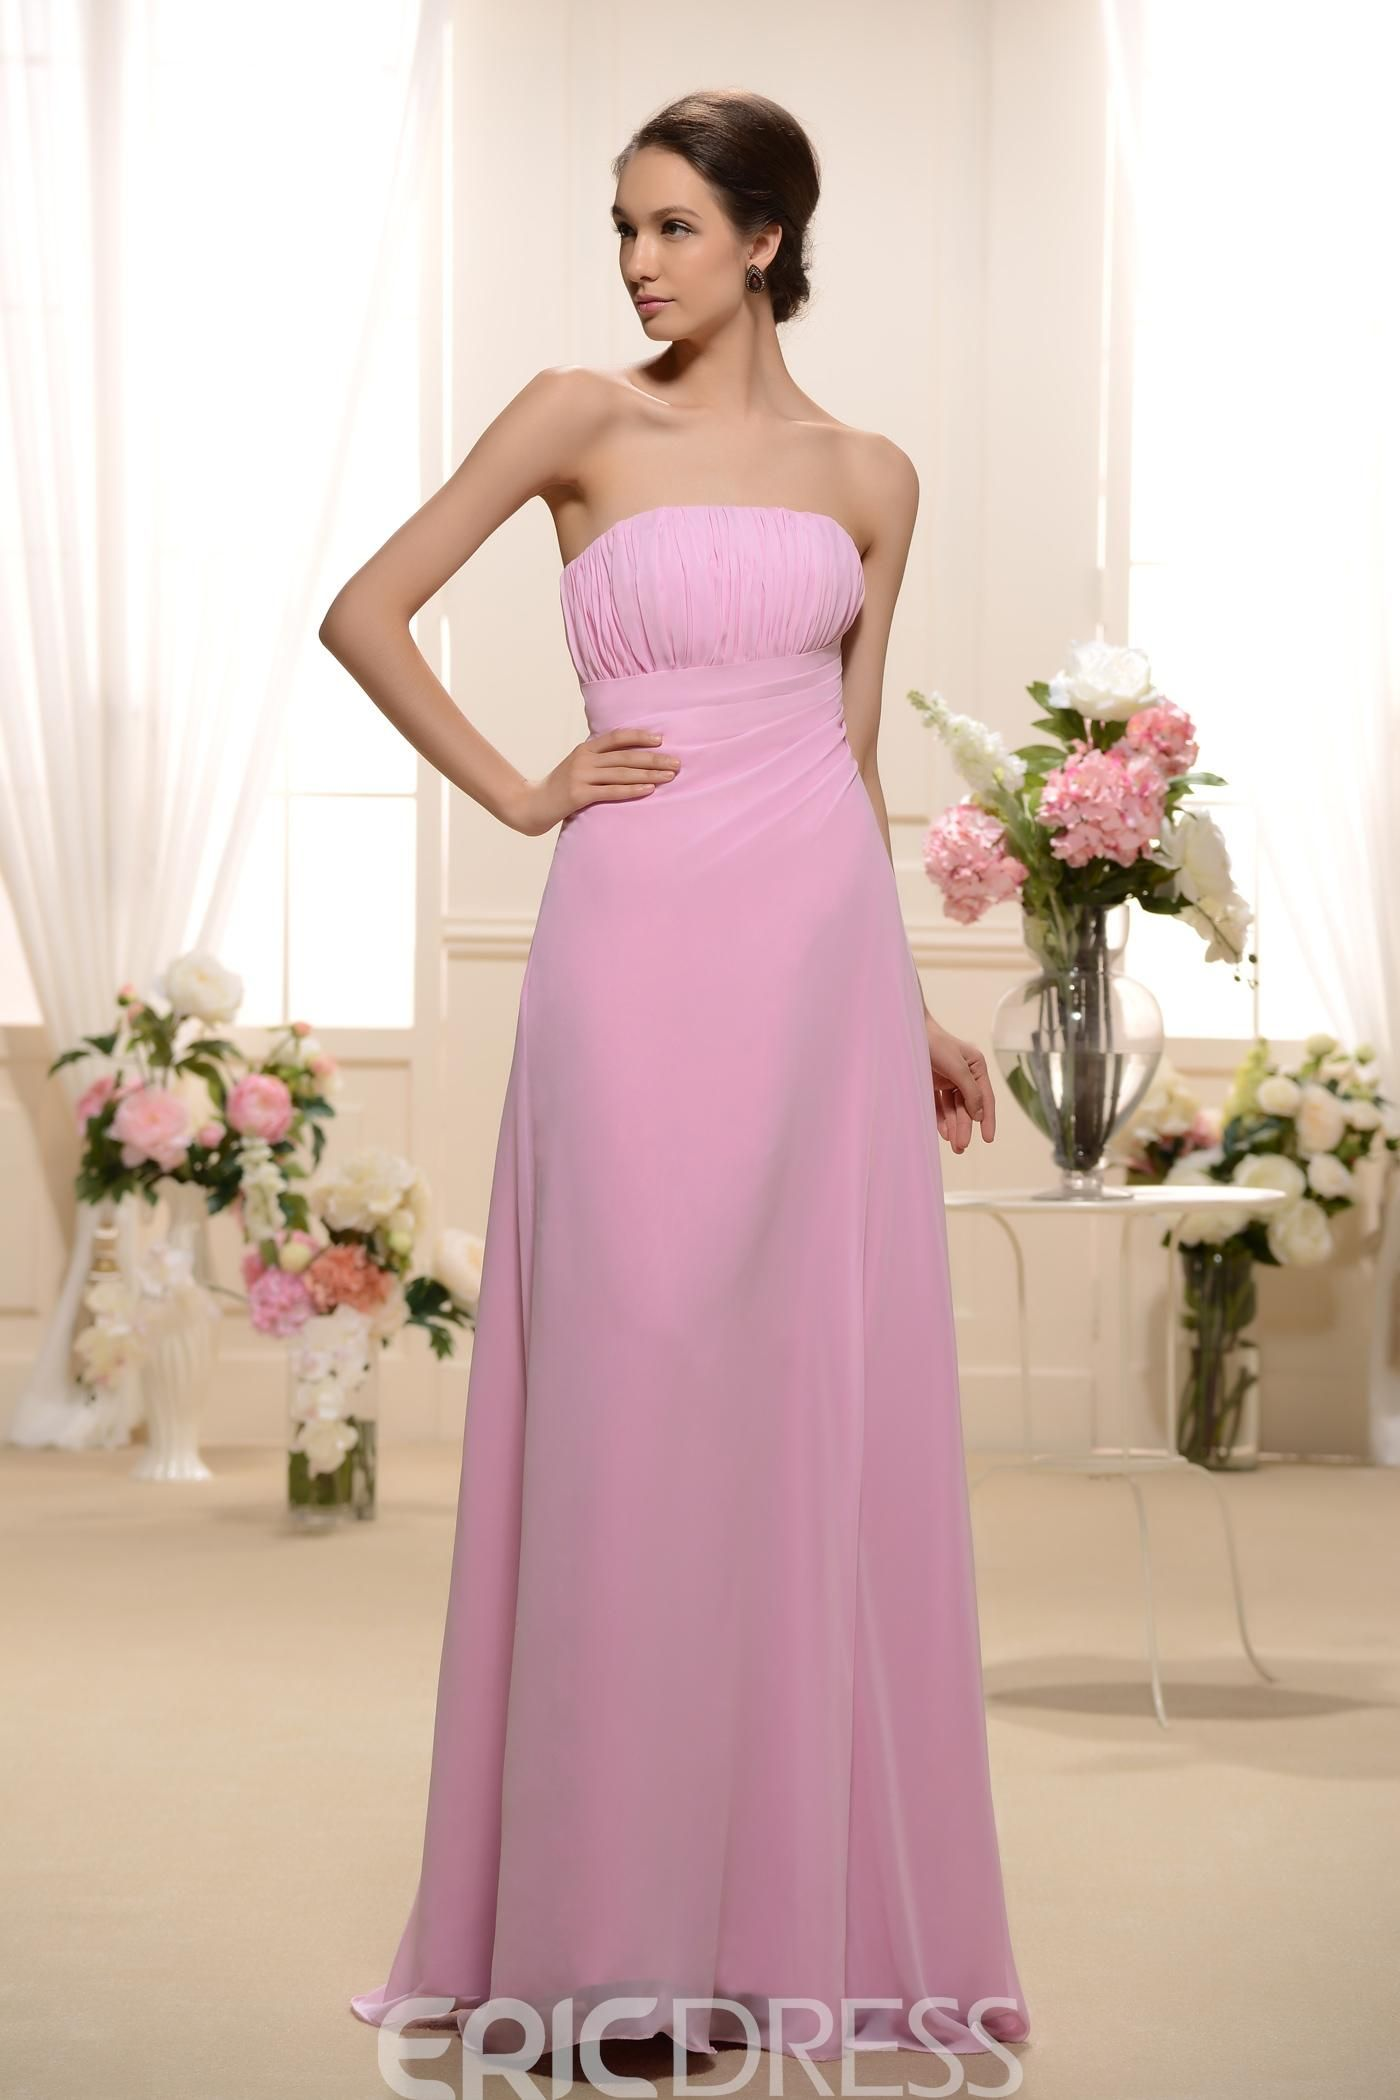 Design Ruched A-Line Strapless Floor-Length Bridesmaid Dress | Pinterest